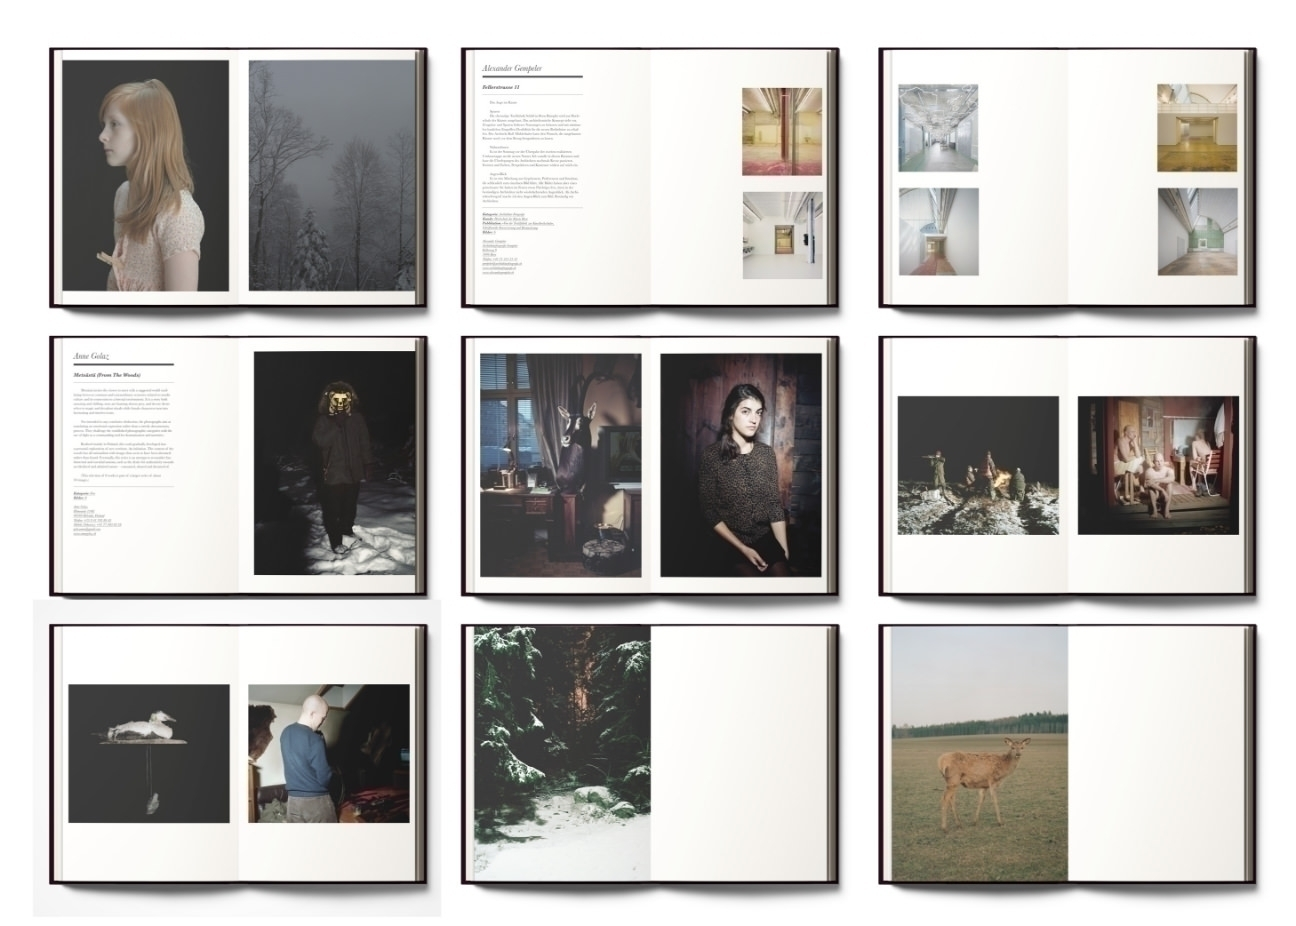 Swiss Photo Award Book (Catalog - marcomariosimonetti | ello